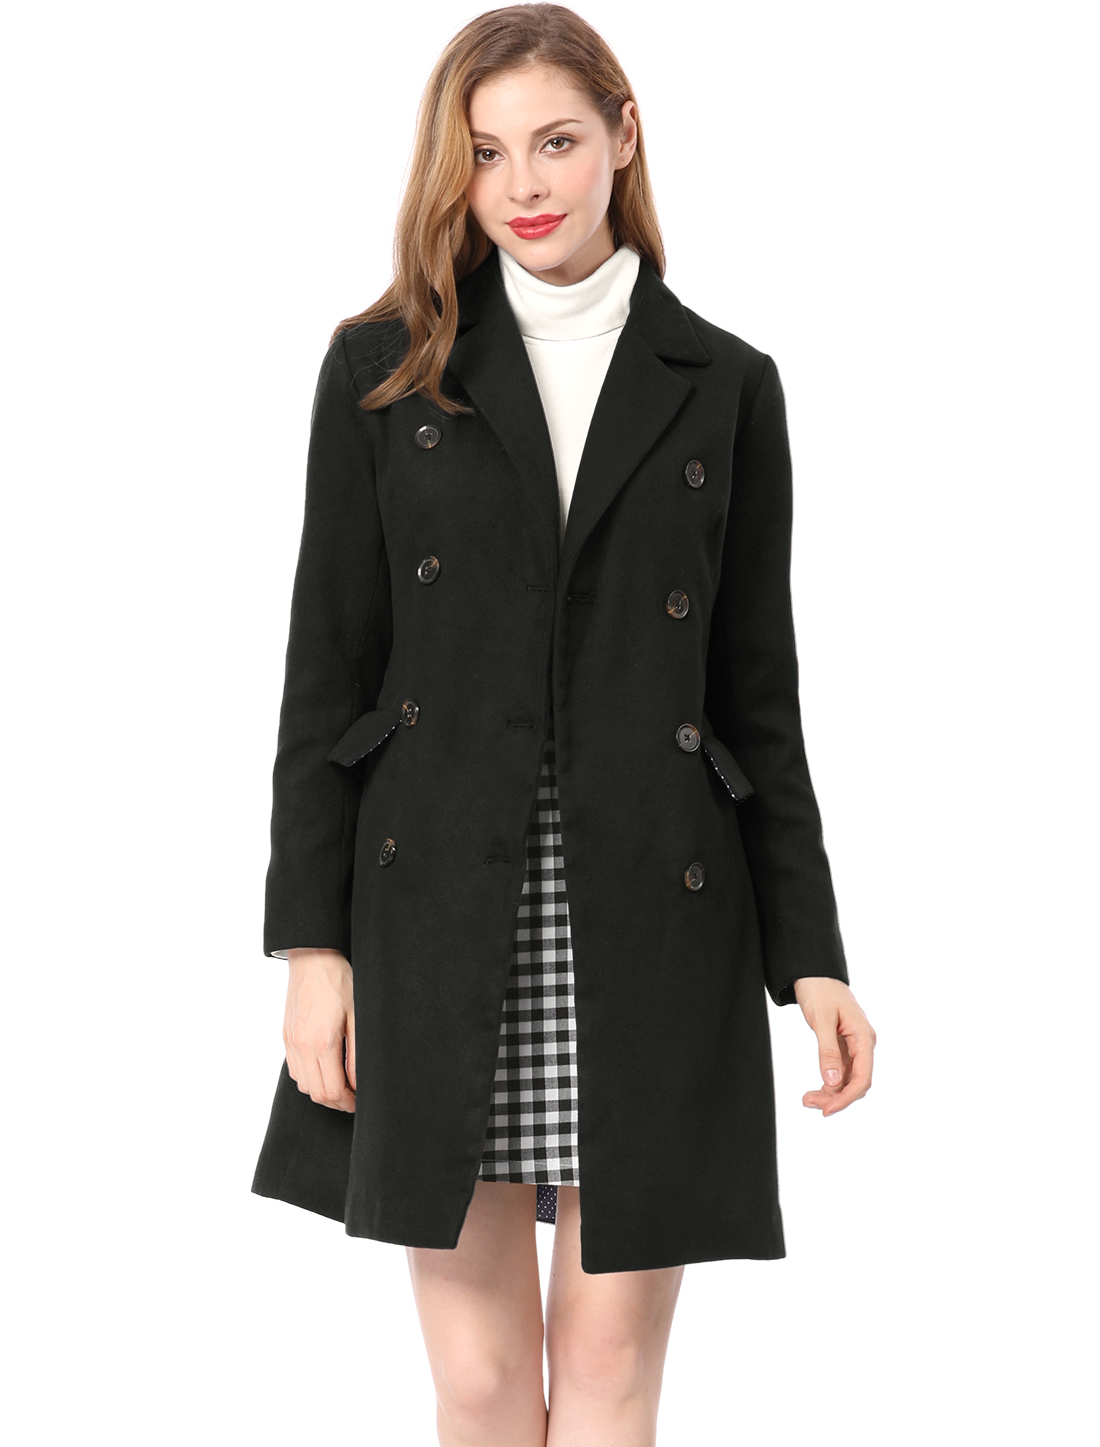 Women Notched Lapel Double Breasted Trench Coat Black M (US 10)